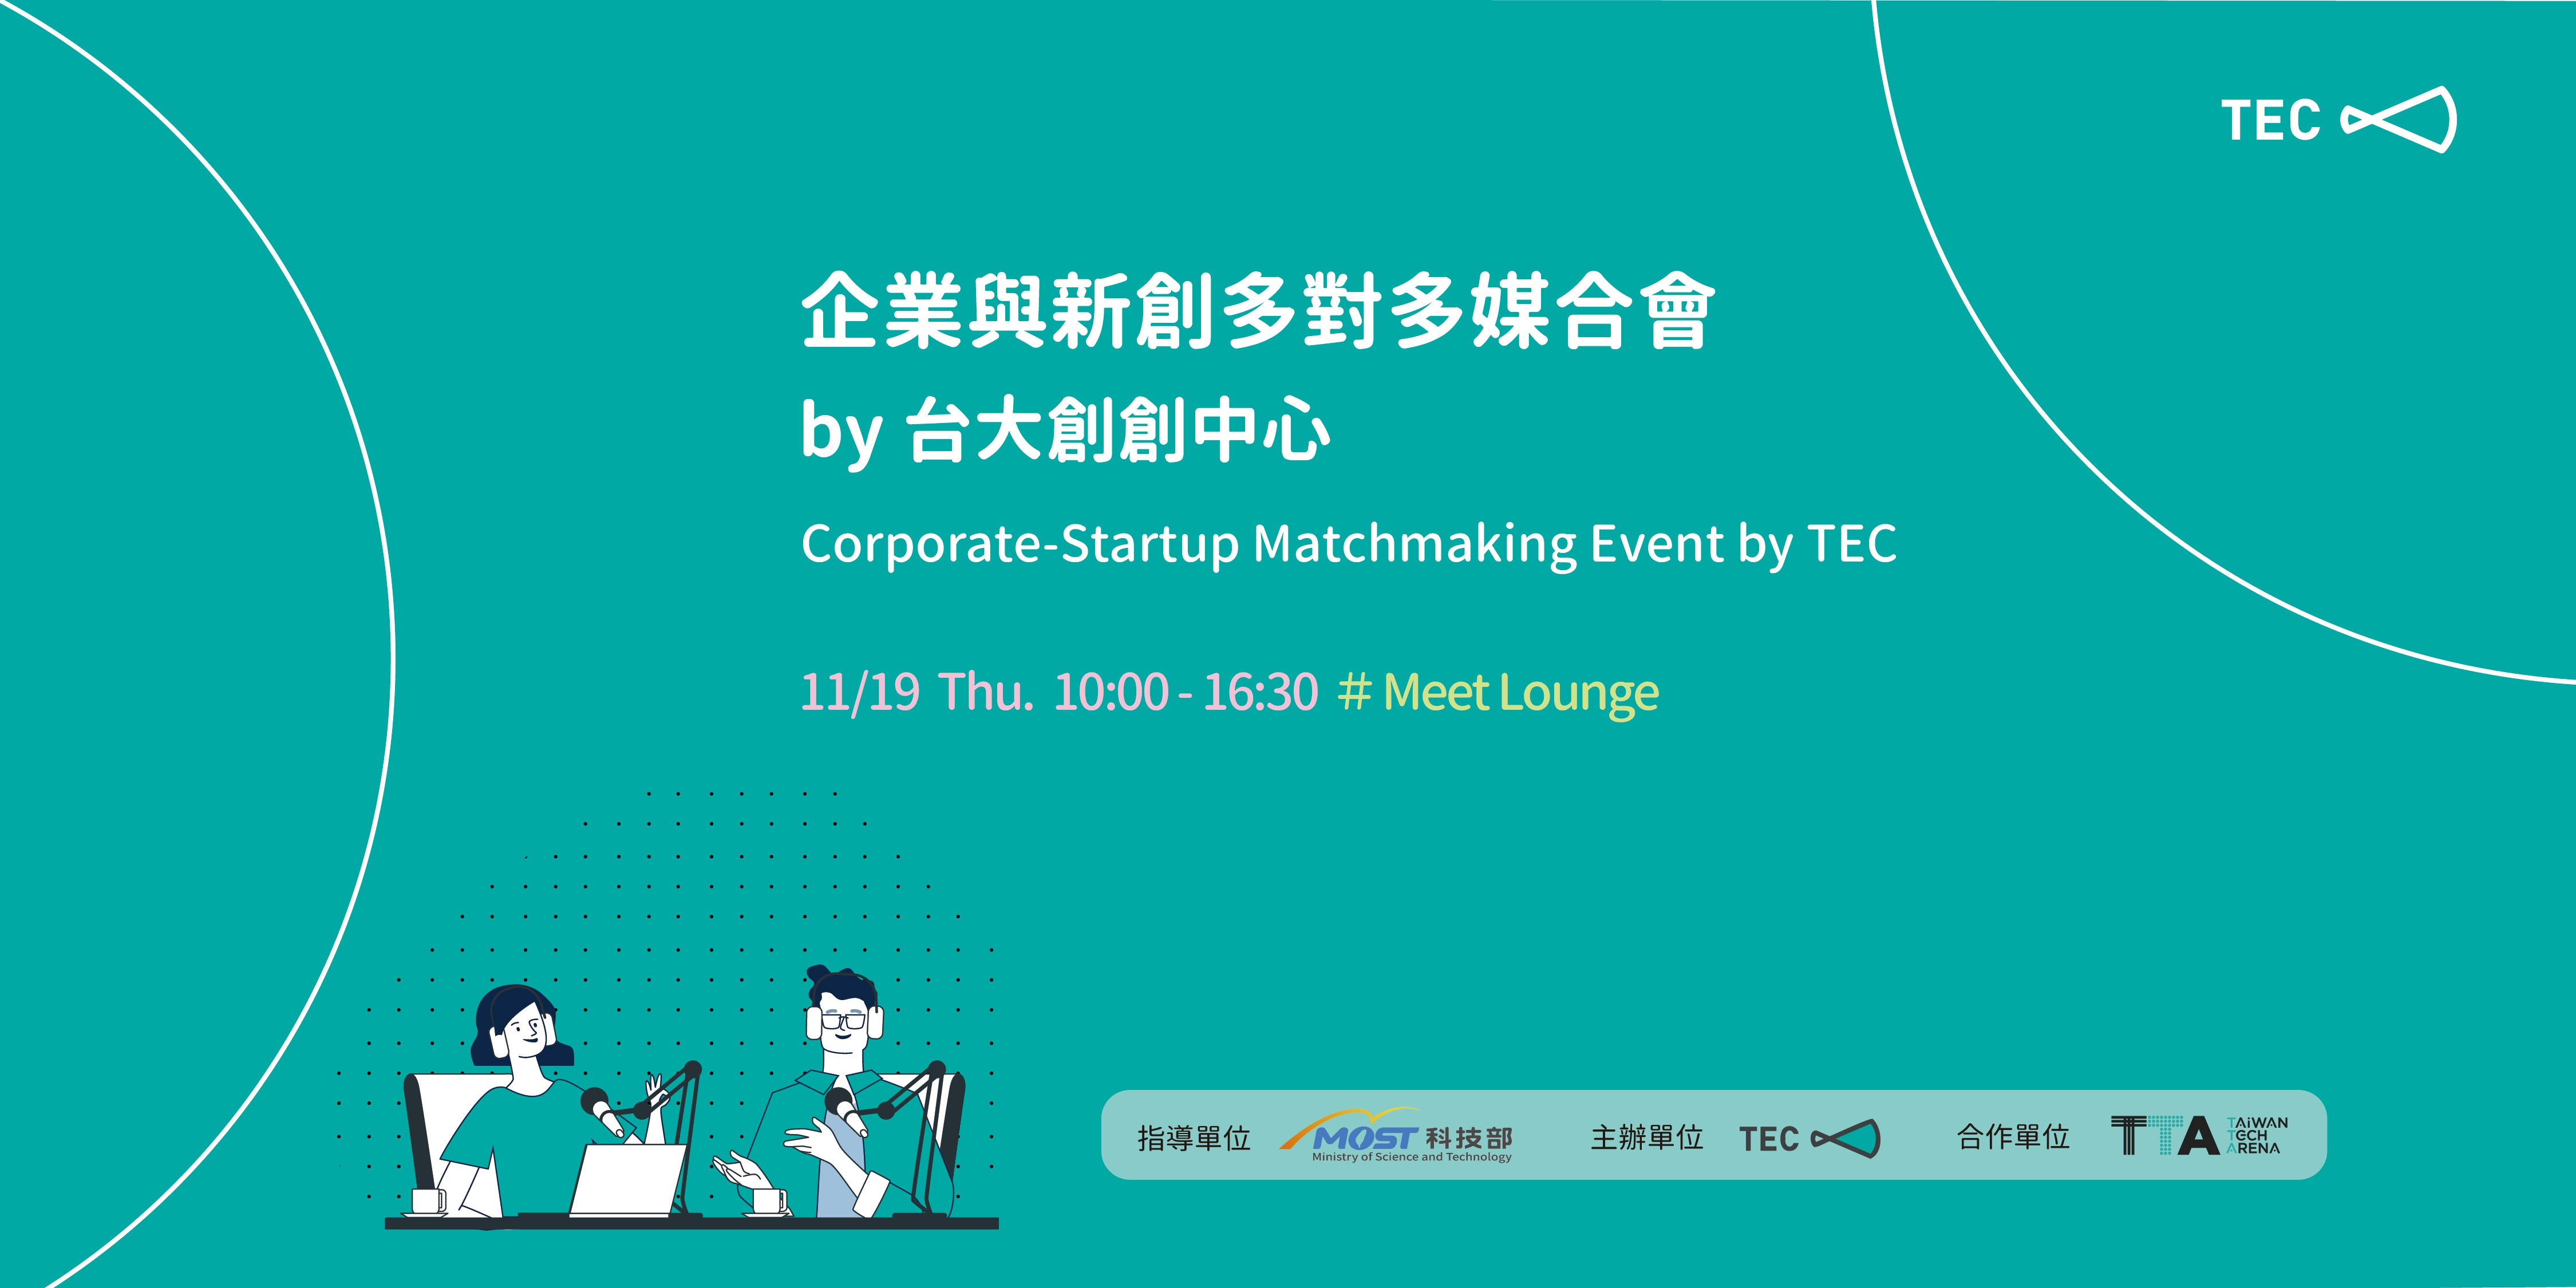 Corporate-Startup Matchmaking Event by TEC